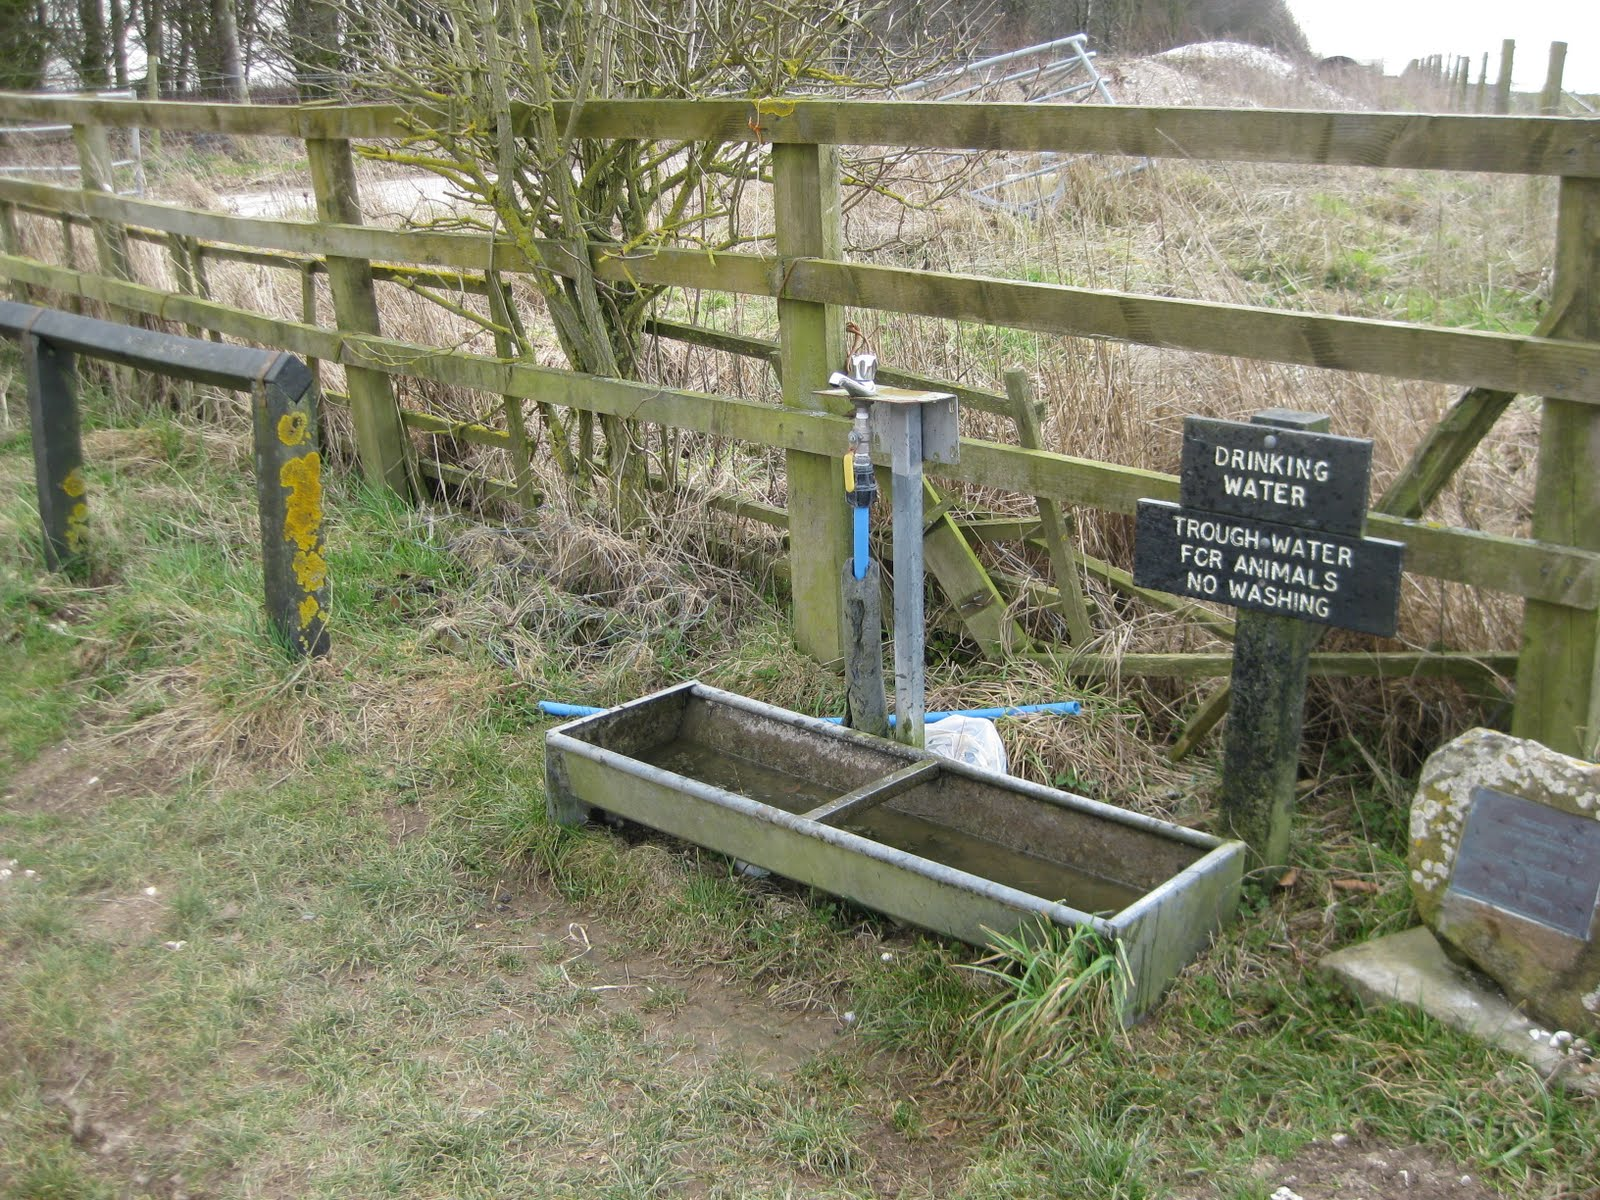 I like this place - drinking water provided along bridleways